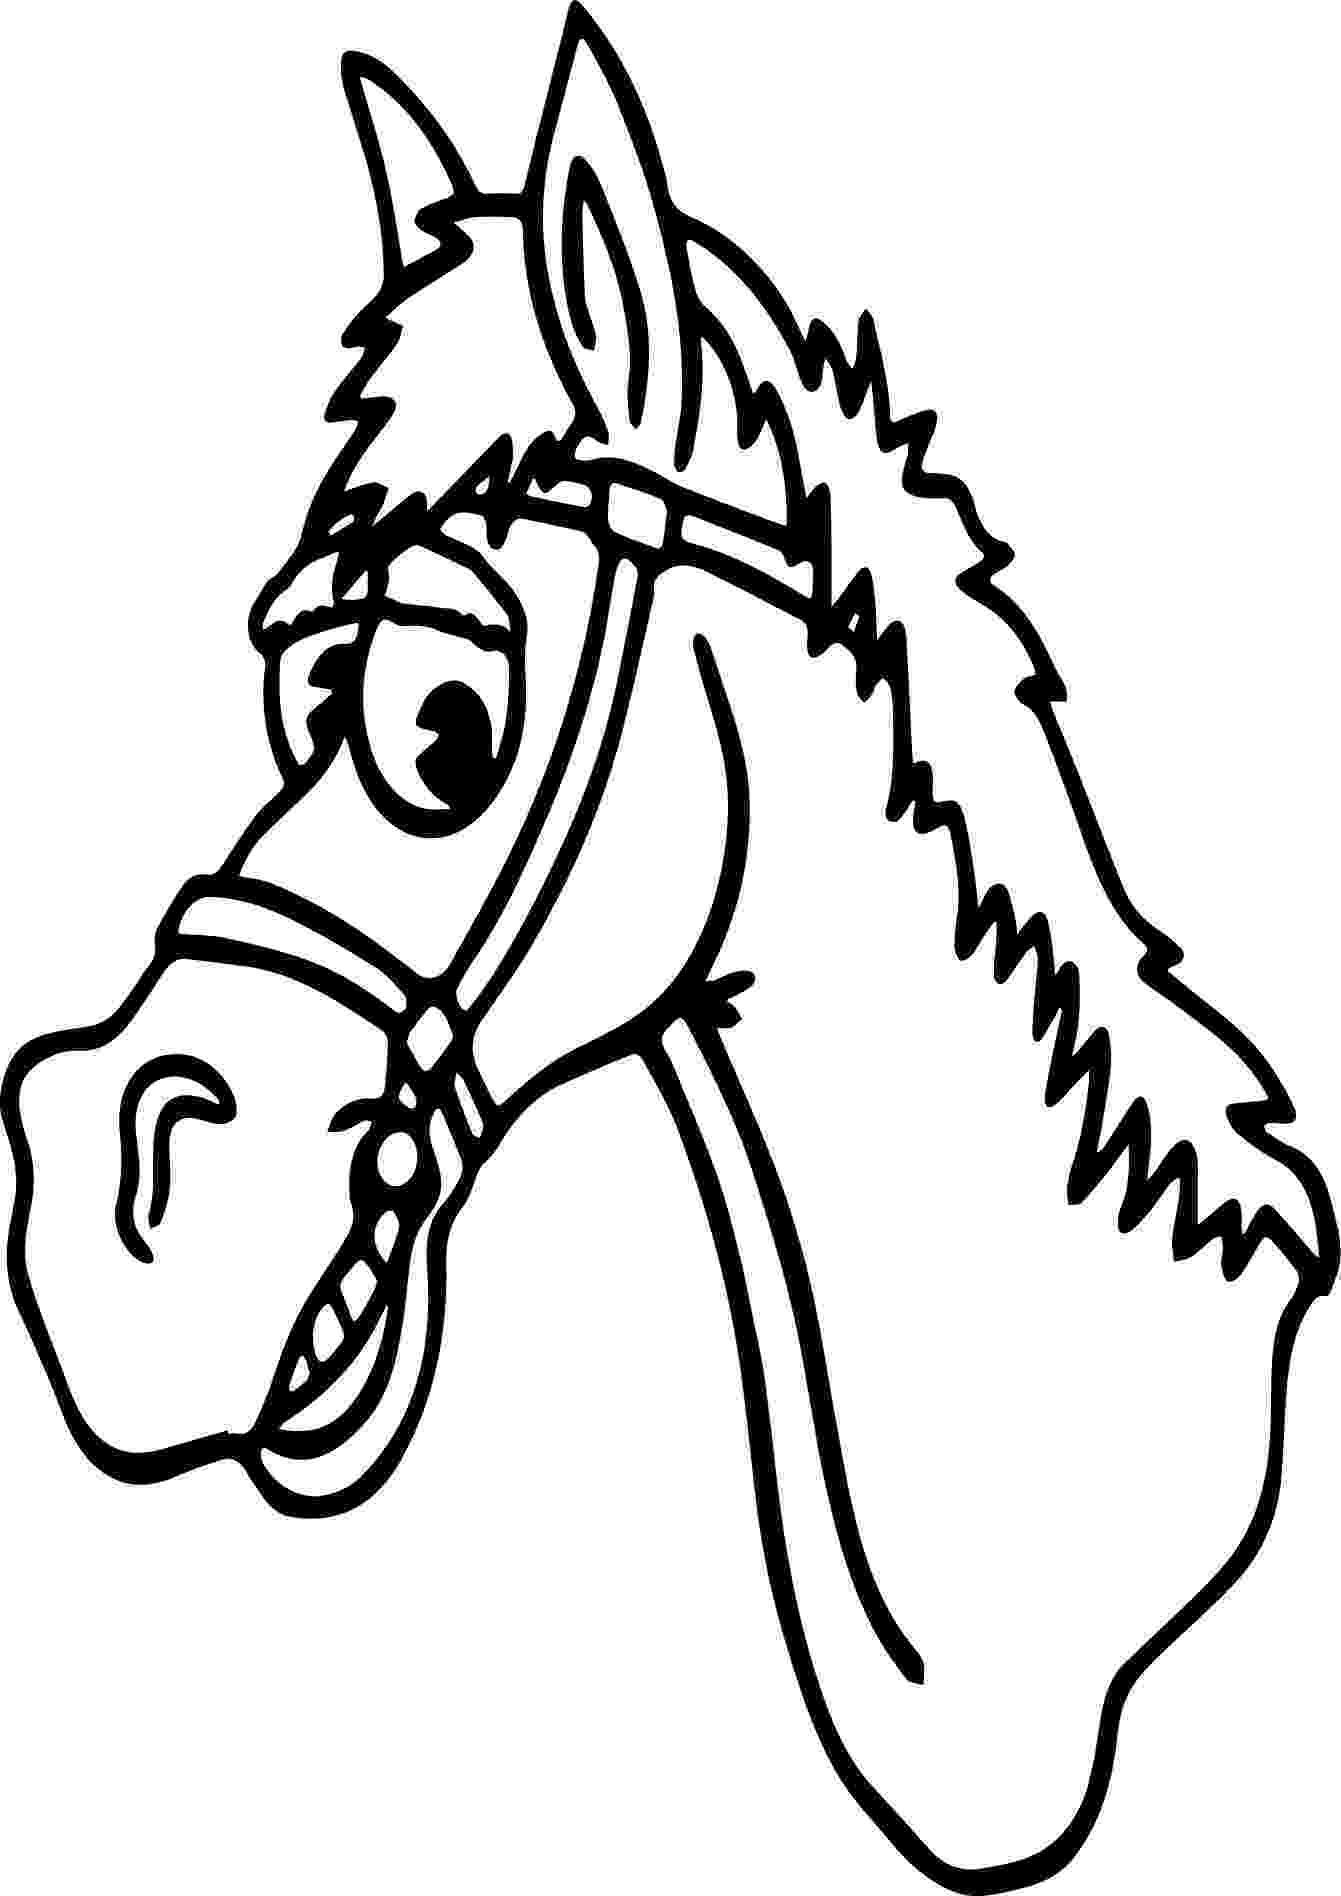 horse face coloring page arabian horse face coloring page wecoloringpagecom horse face page coloring